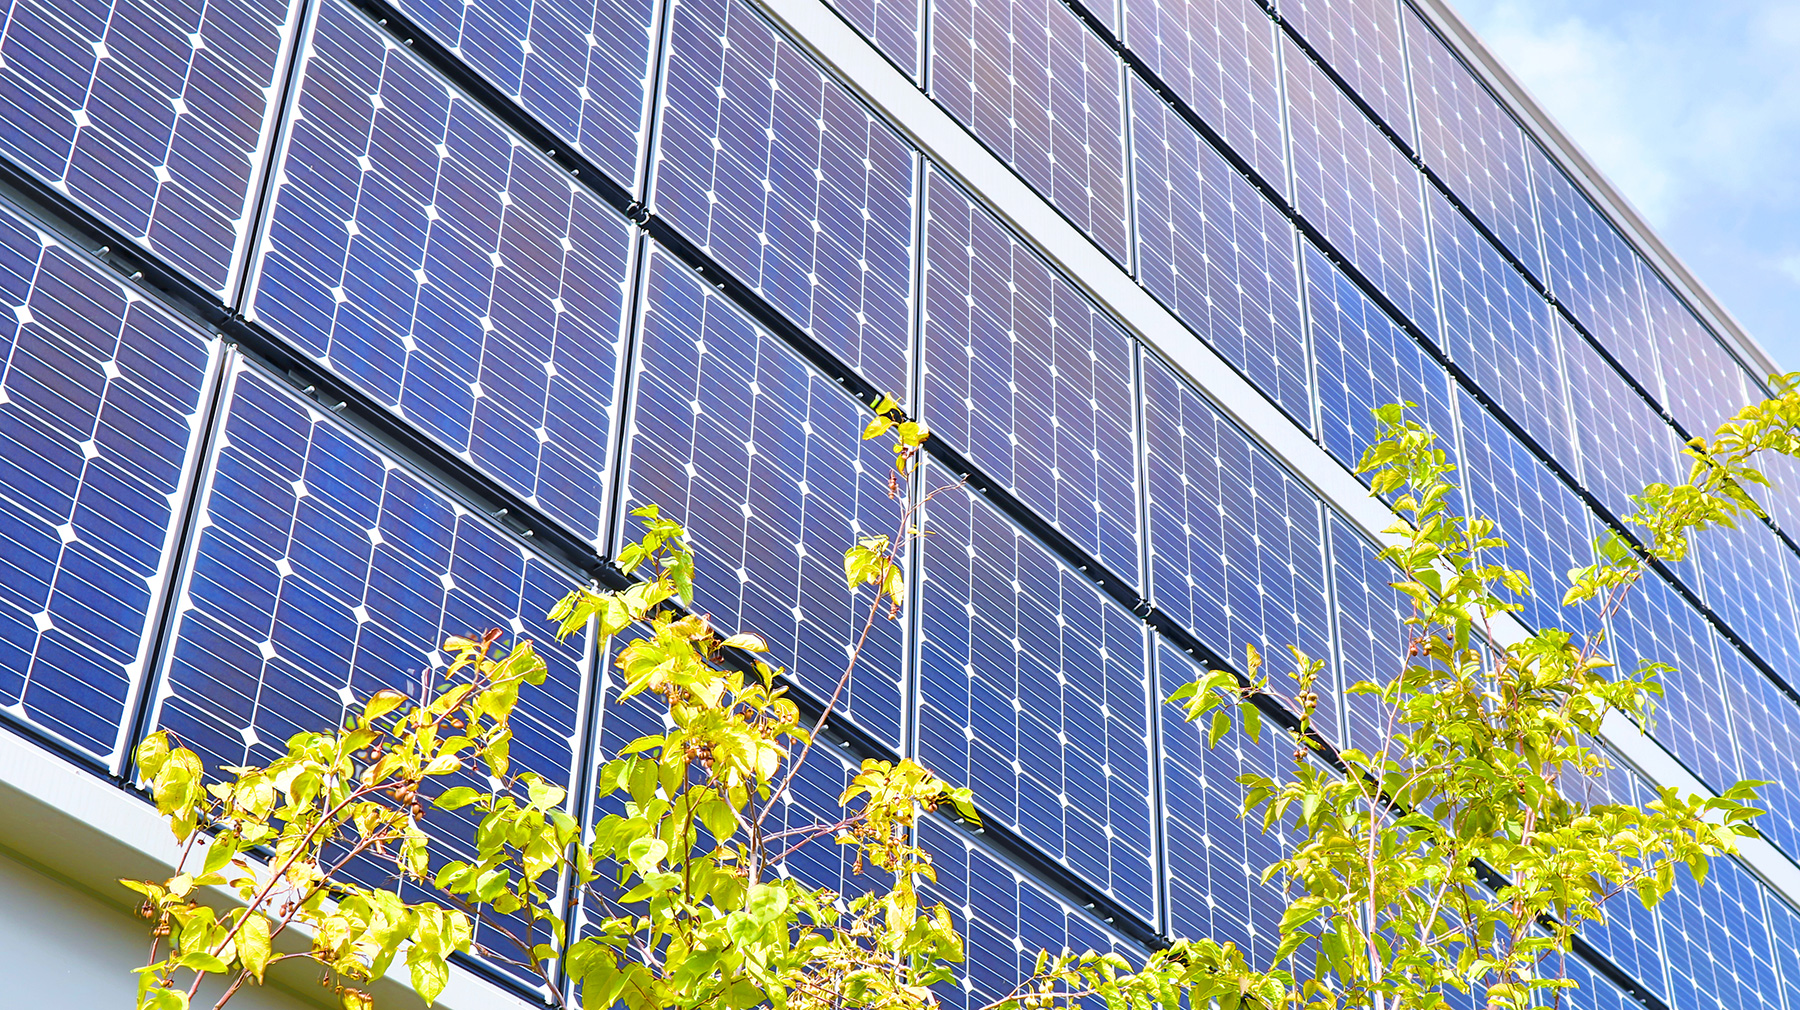 Top 5 Major Corporations that are Making BIG investments in Solar Energy in 2020